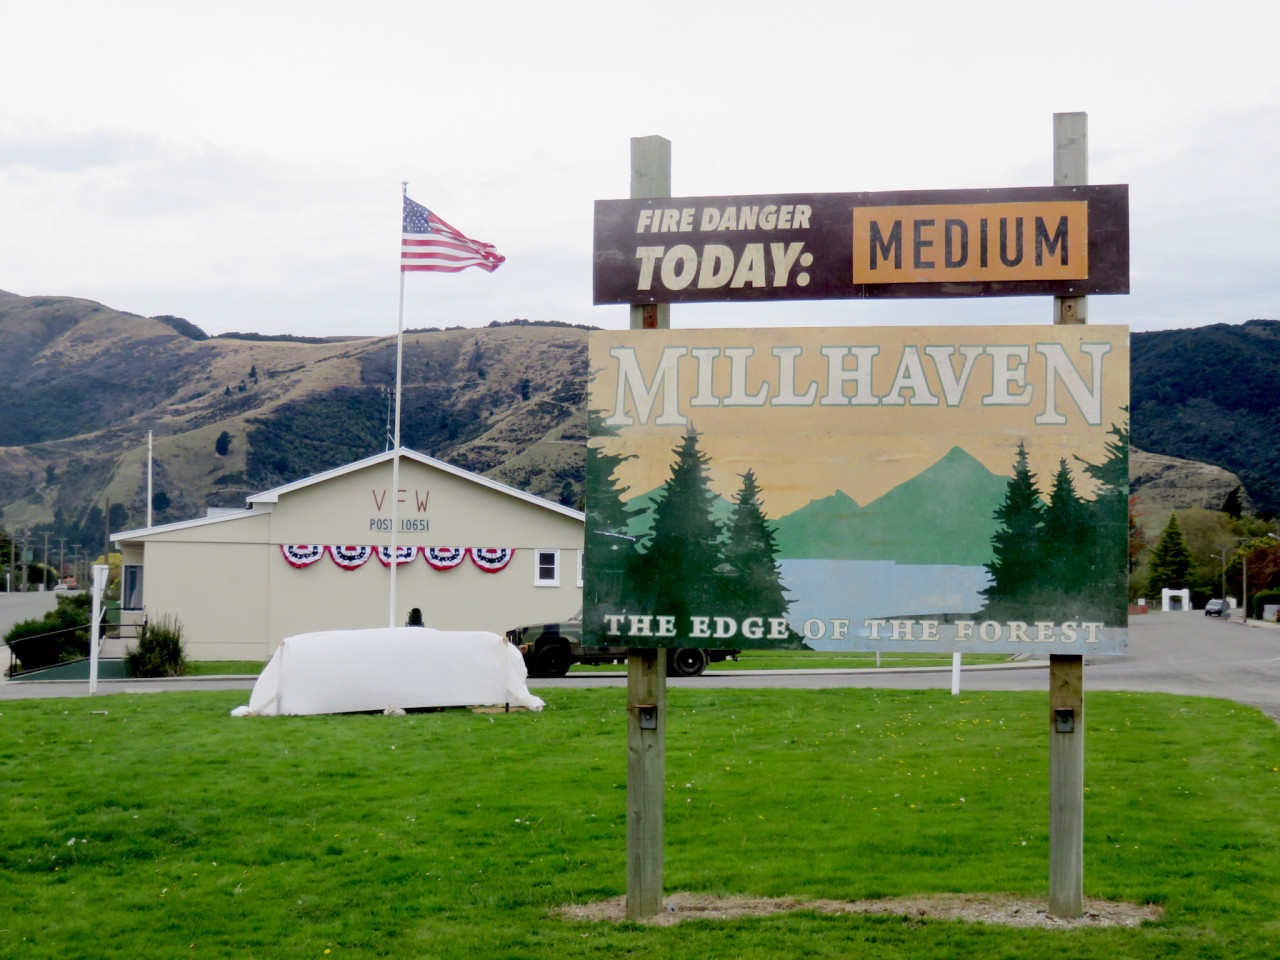 Welcome to Millhaven, aka: Tapanui in West Otago, New Zealand. This sign was put up for the duration of the filming.